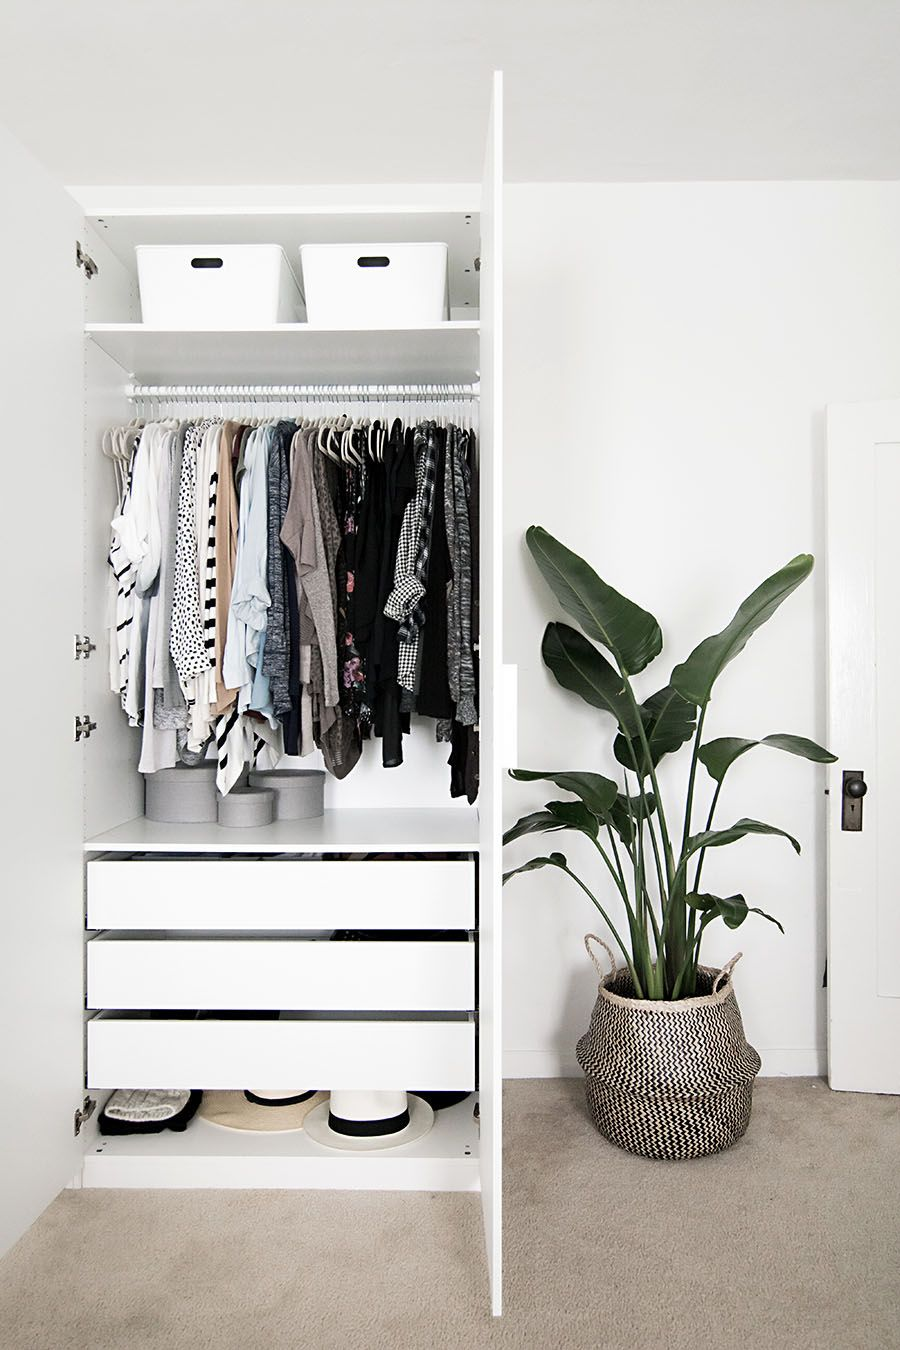 Swooning over this minimalist closet + Less is more. Shop similar looks @ .crateandrust.com & Hideaway Storage Ideas for Small Spaces | Pinterest | Storage ideas ...